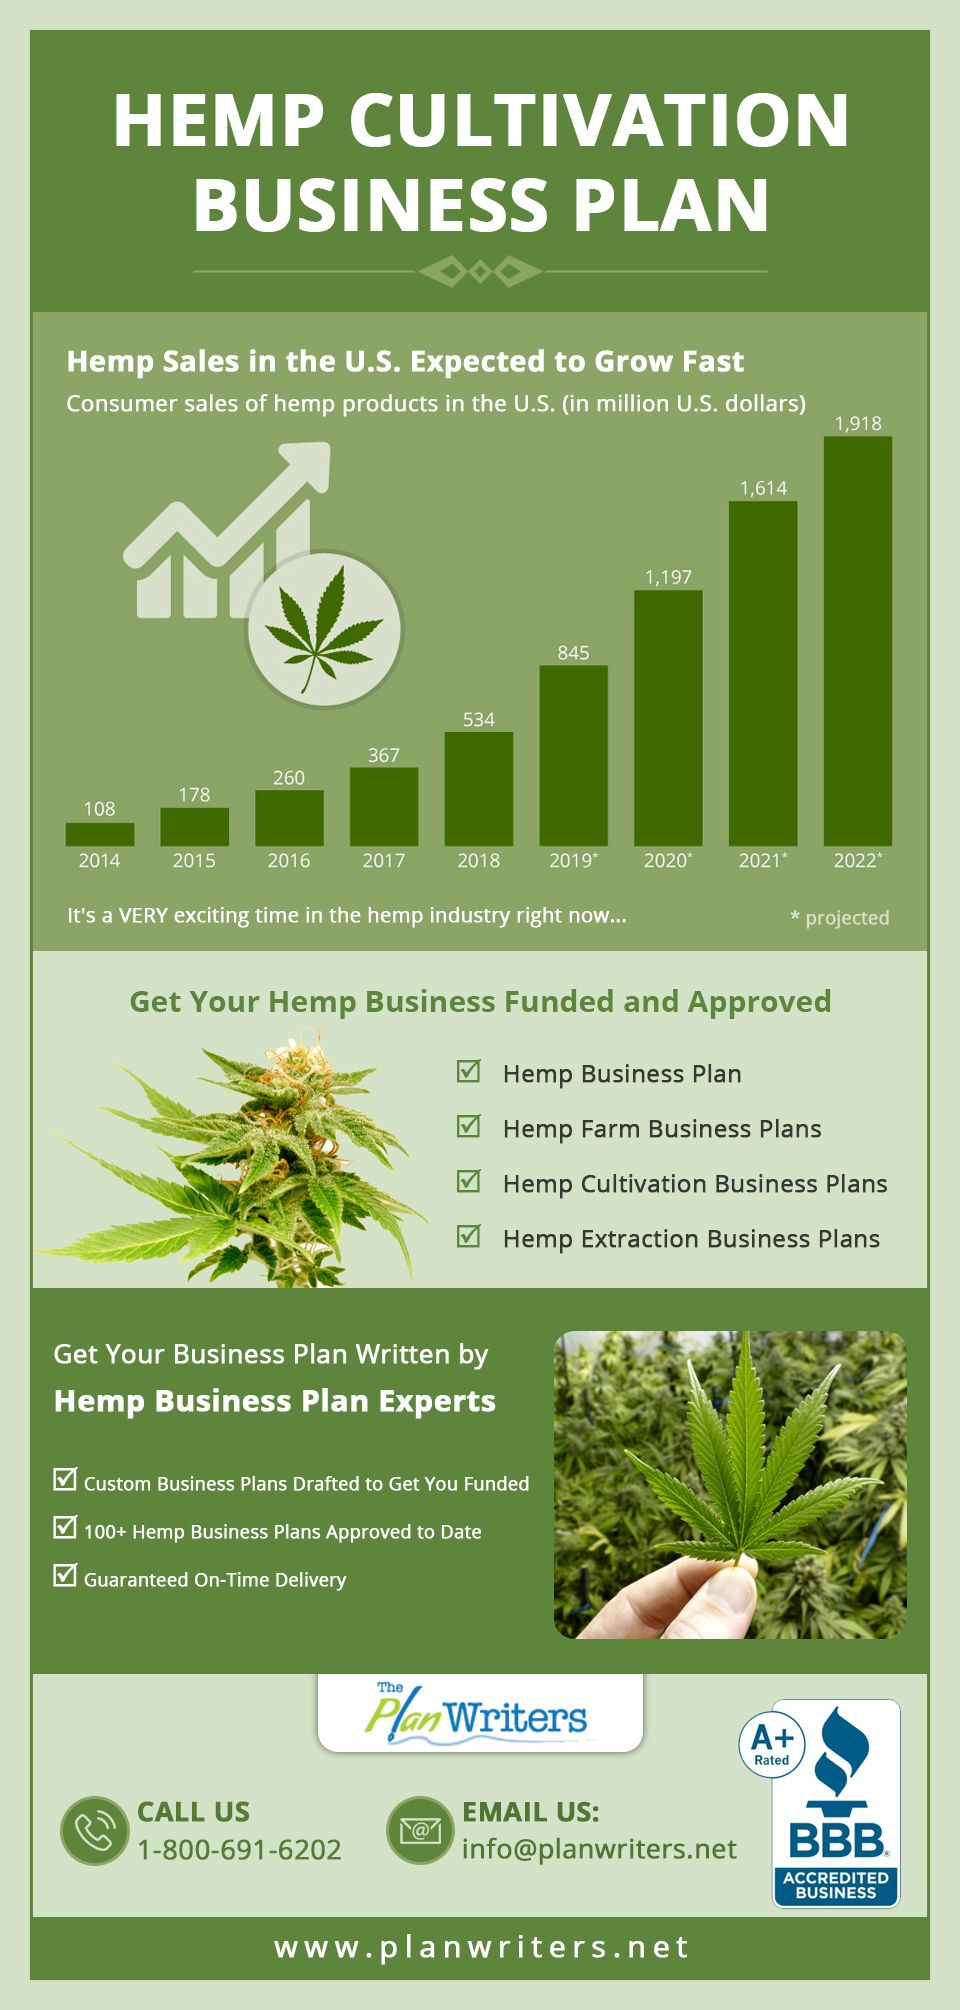 Hemp sales in the U.S expected to grow fast. It's a very